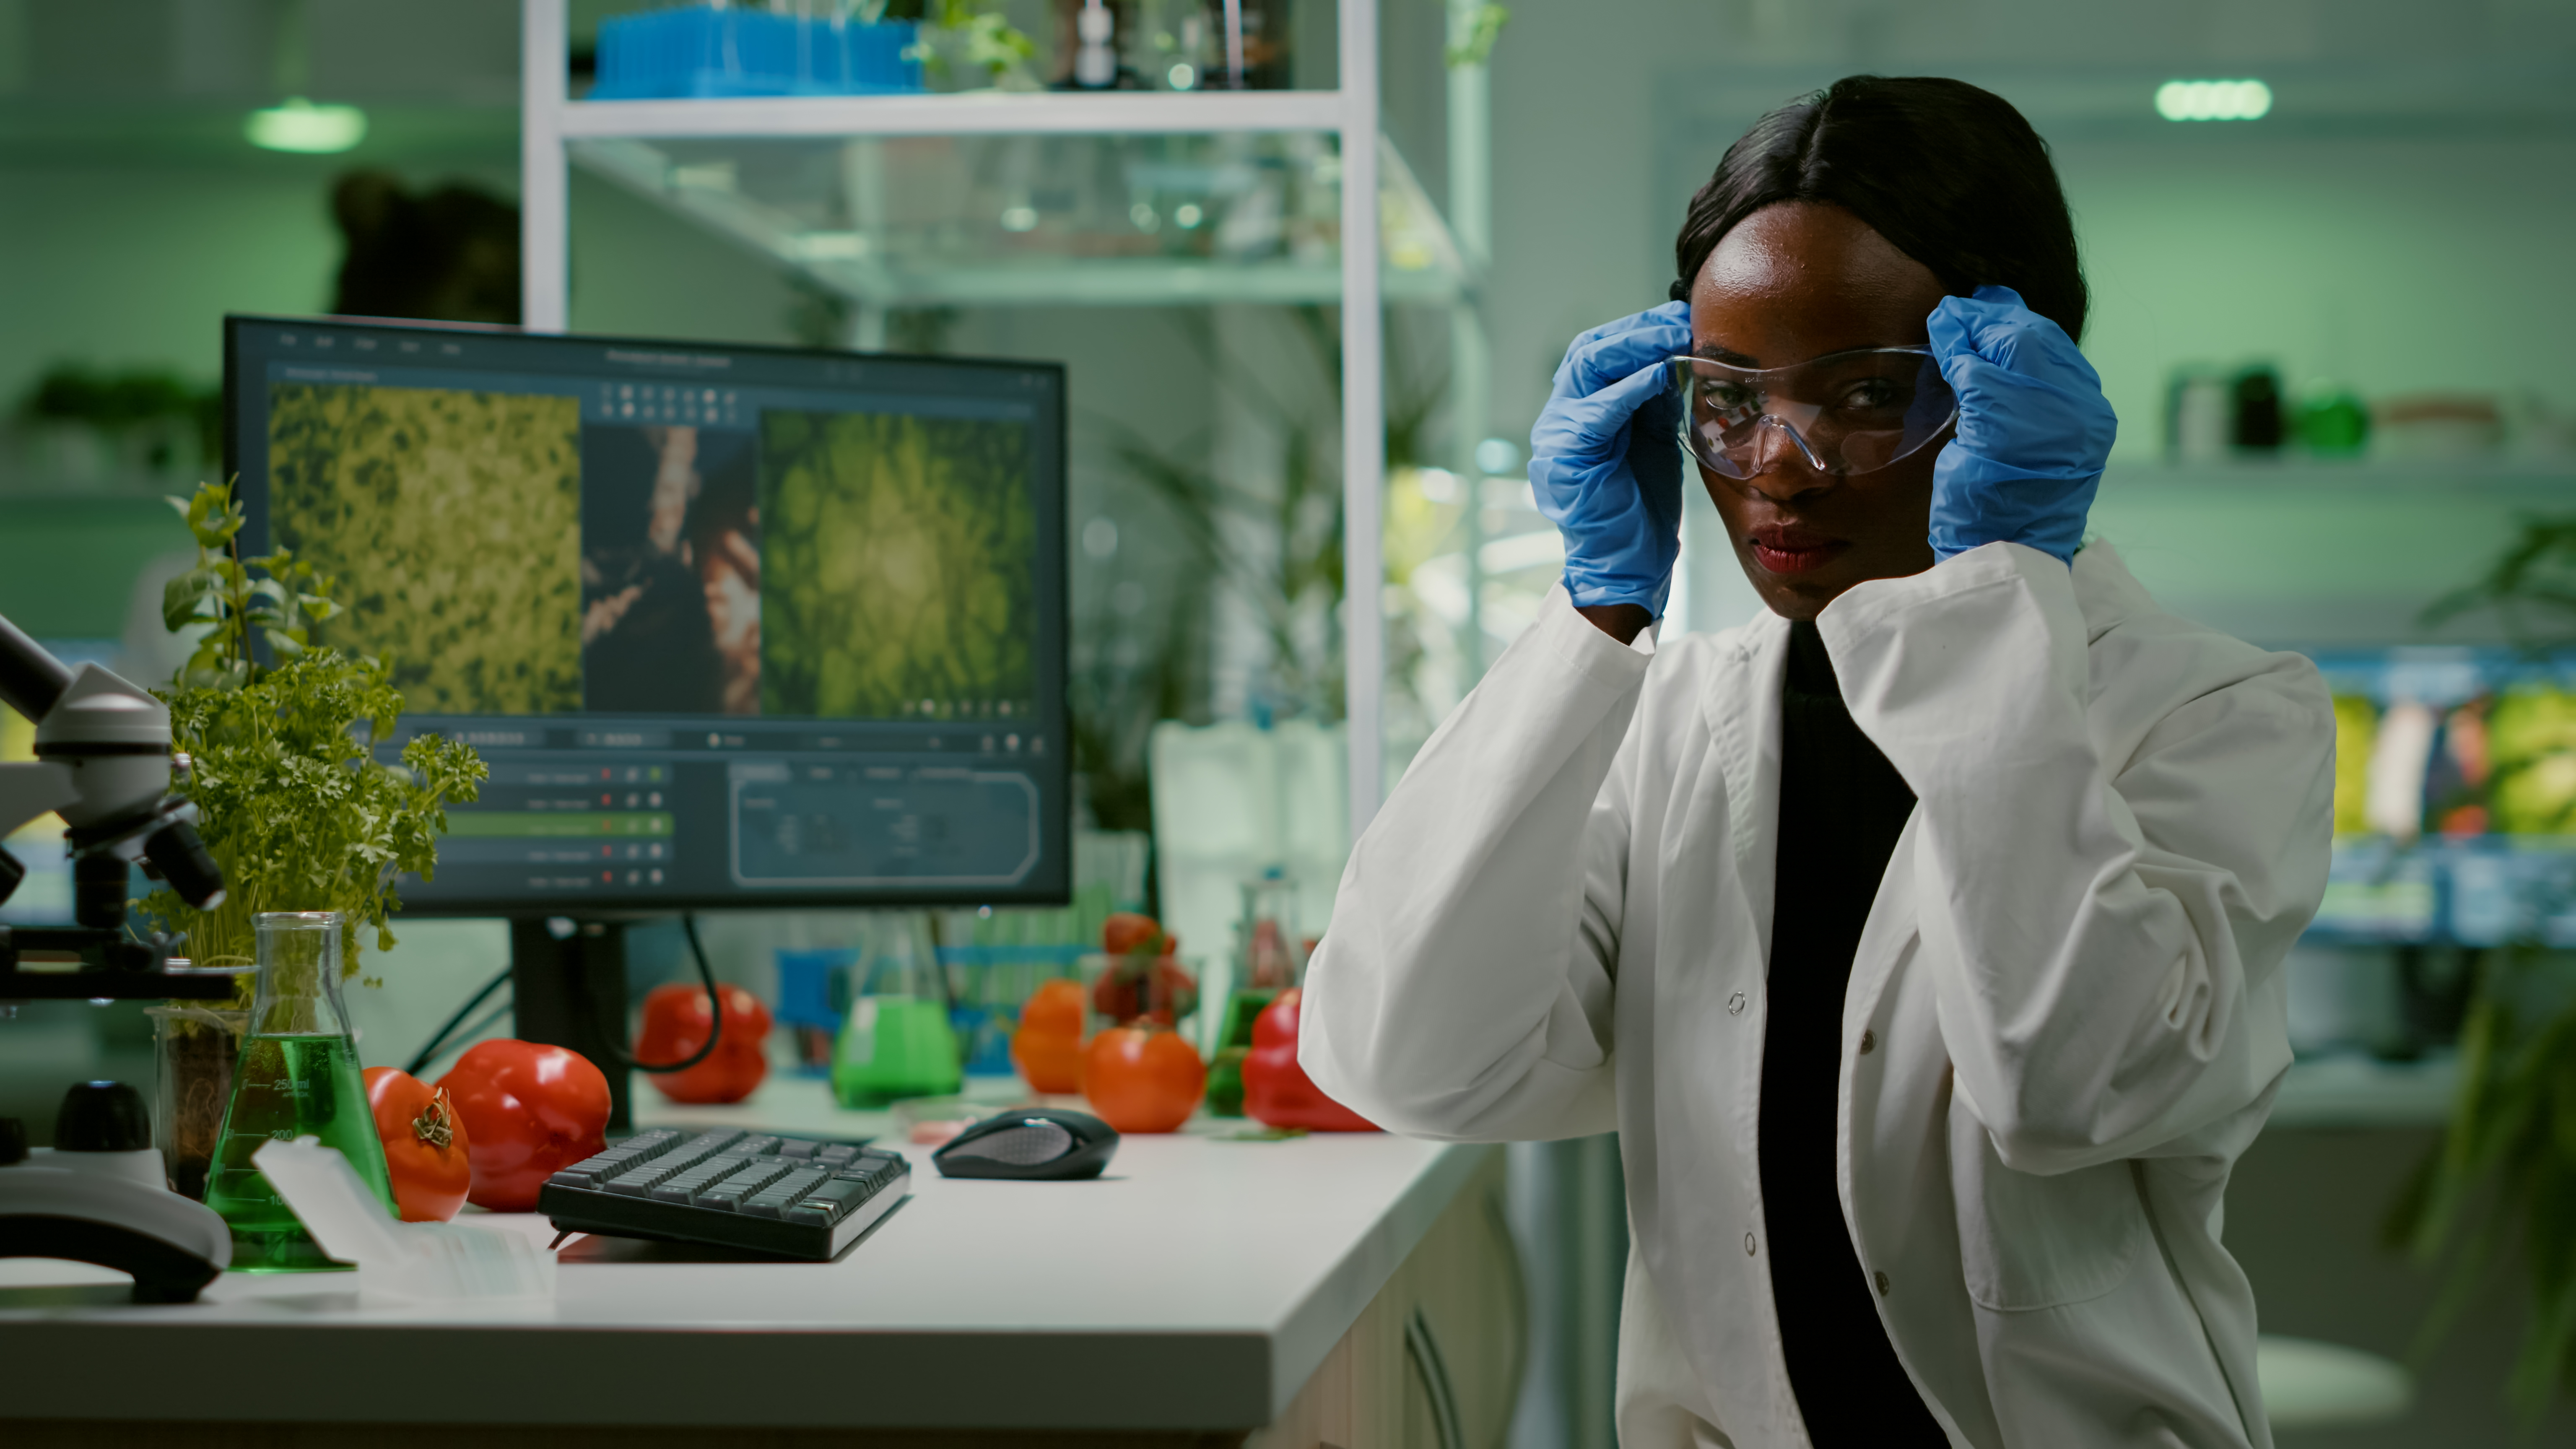 african-scientific-woman-putting-her-medical-glasses-looking-at-camera